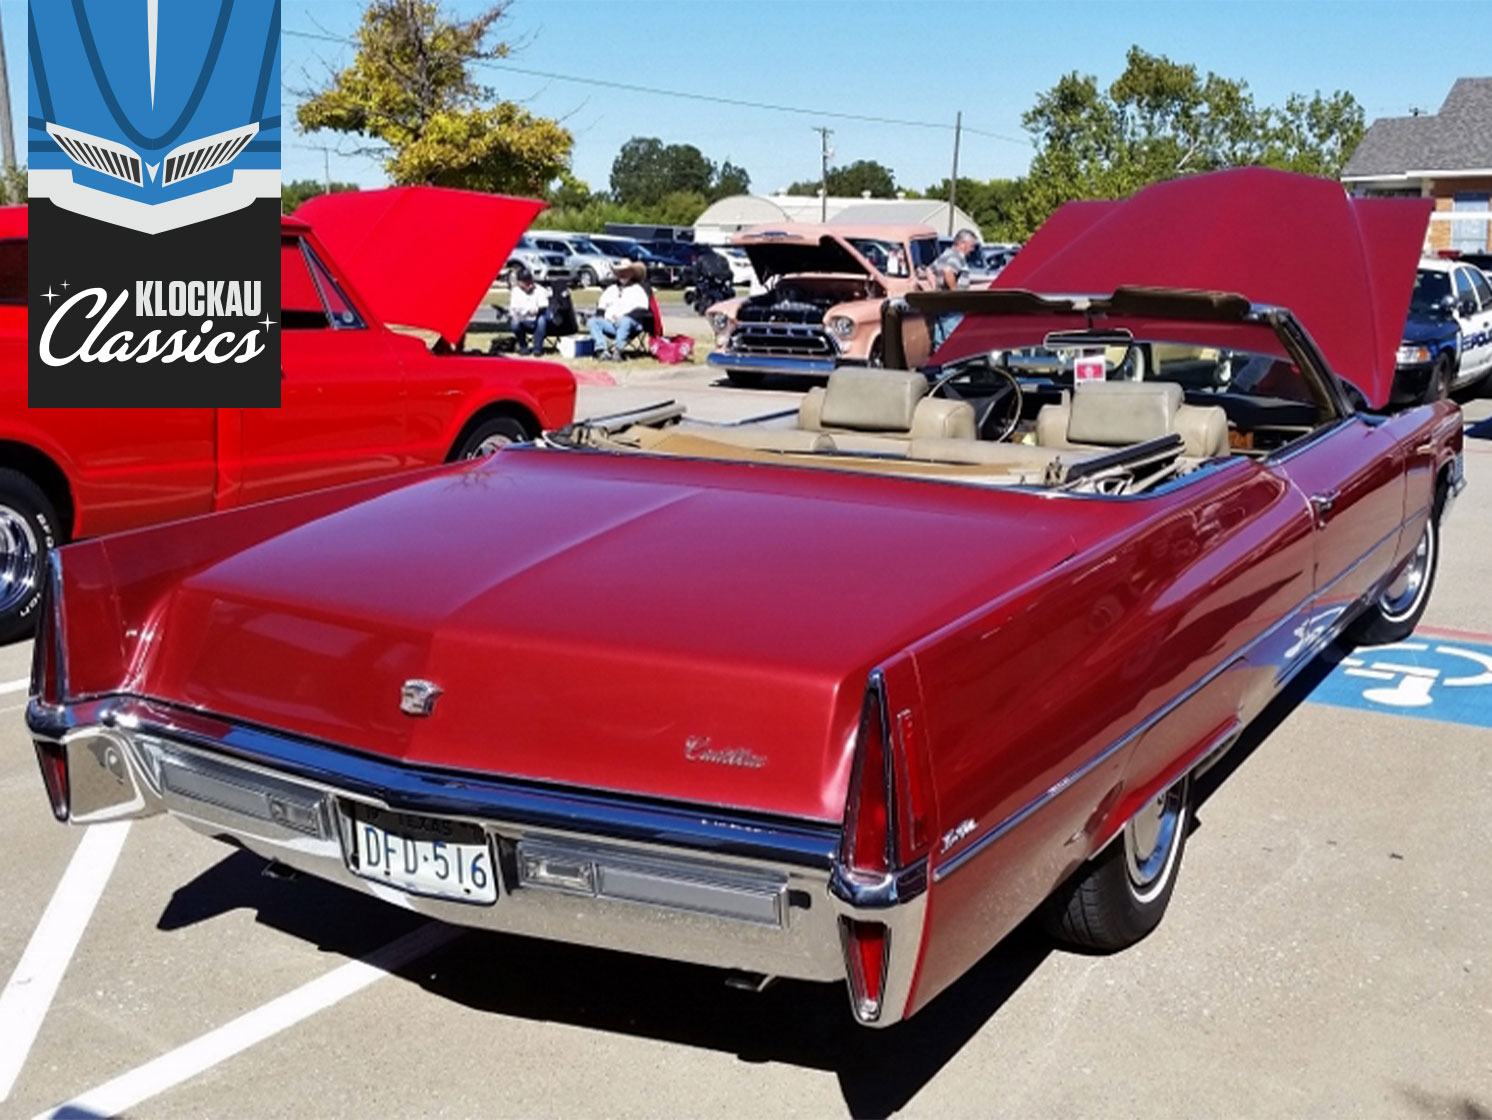 The 1970 DeVille convertible was a fabulous farewell thumbnail